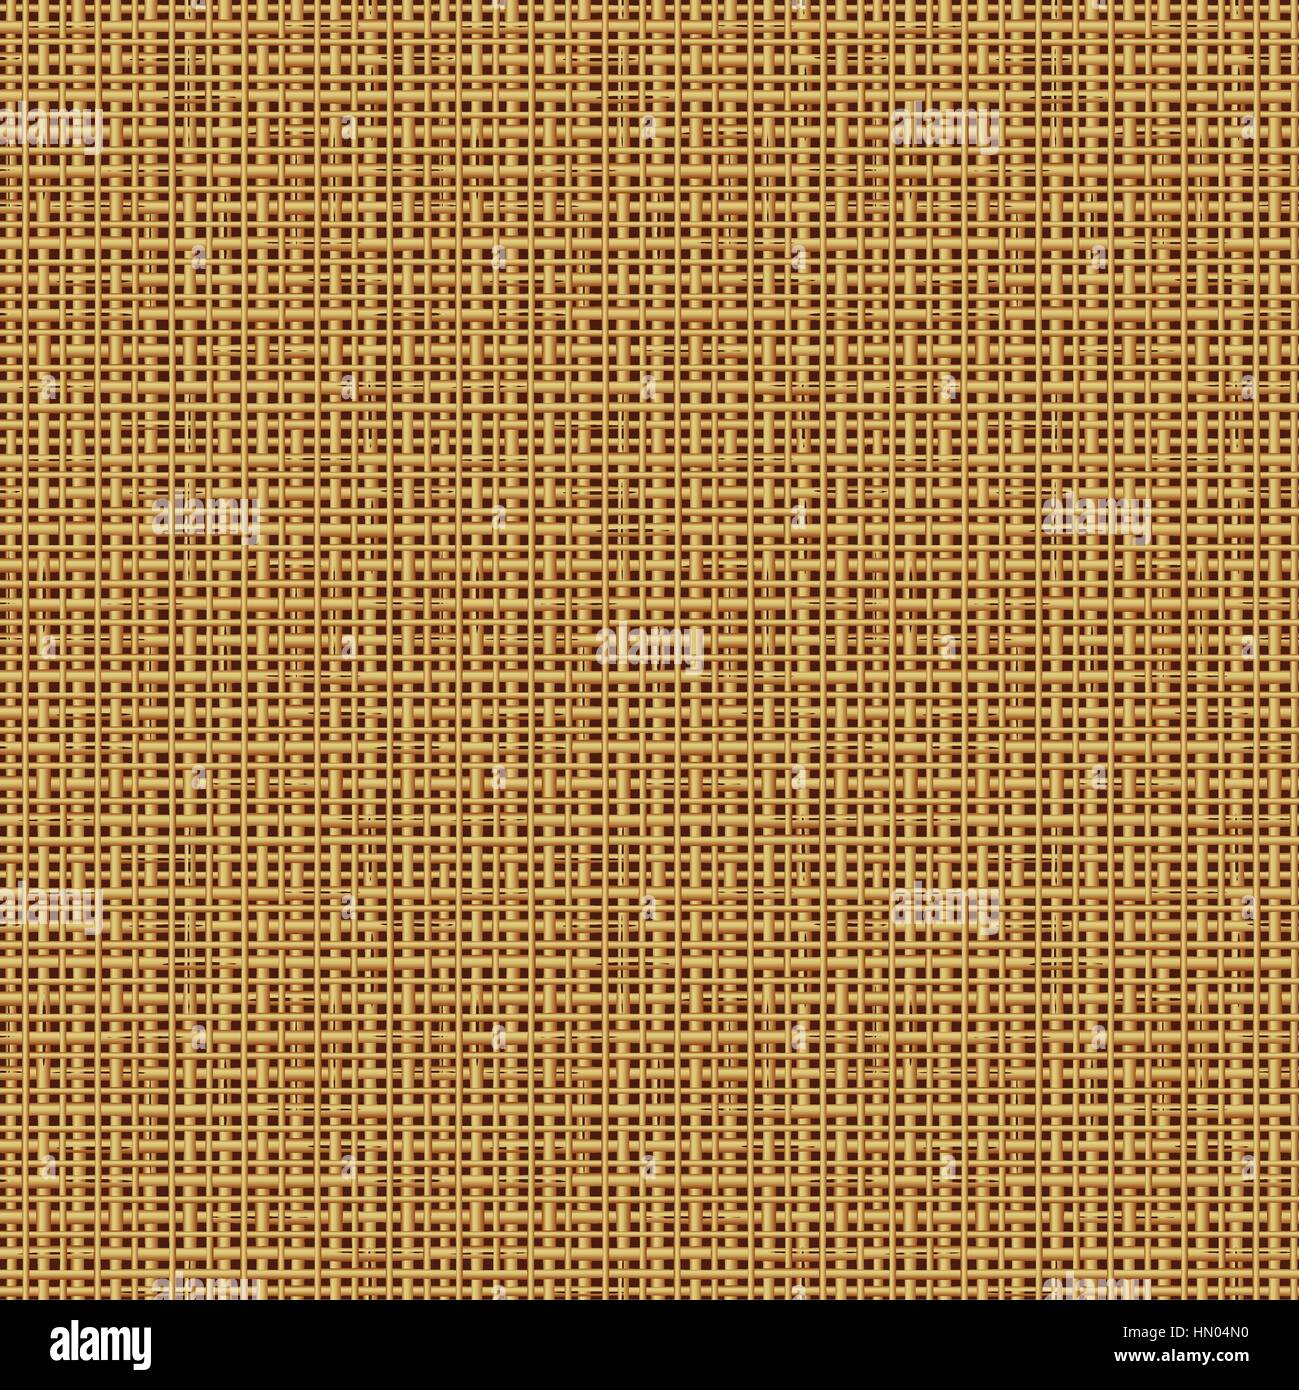 Seamless Burlap Or Canvas Texture Background Repeat Pattern Vector And High Res JPG